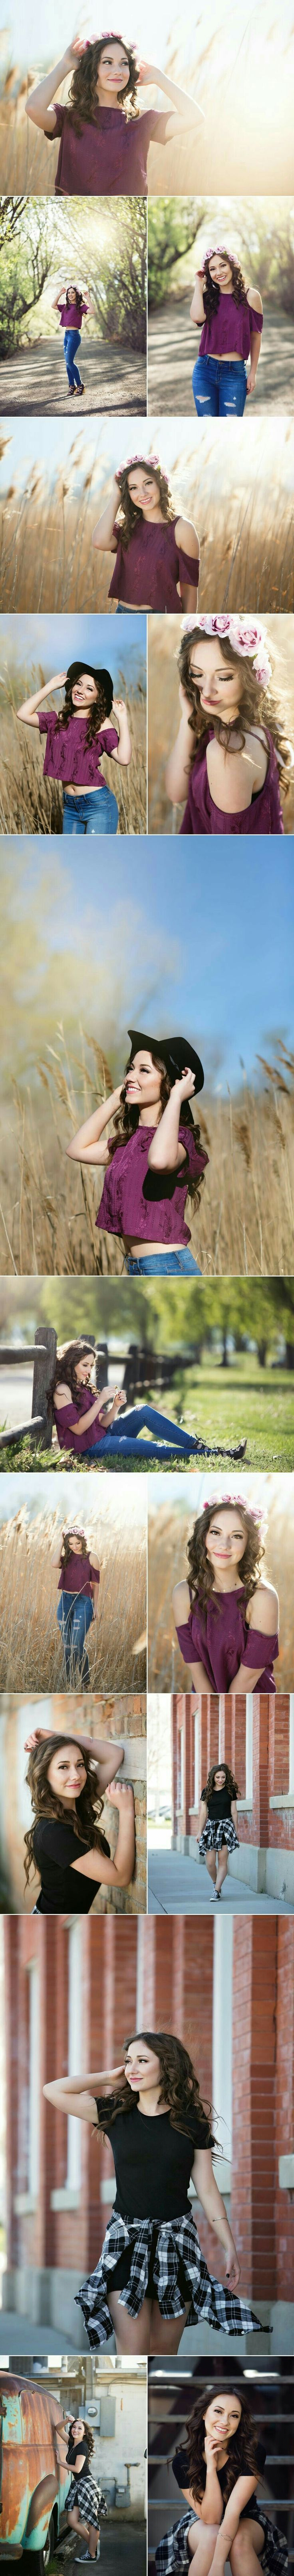 Graduation photography for her